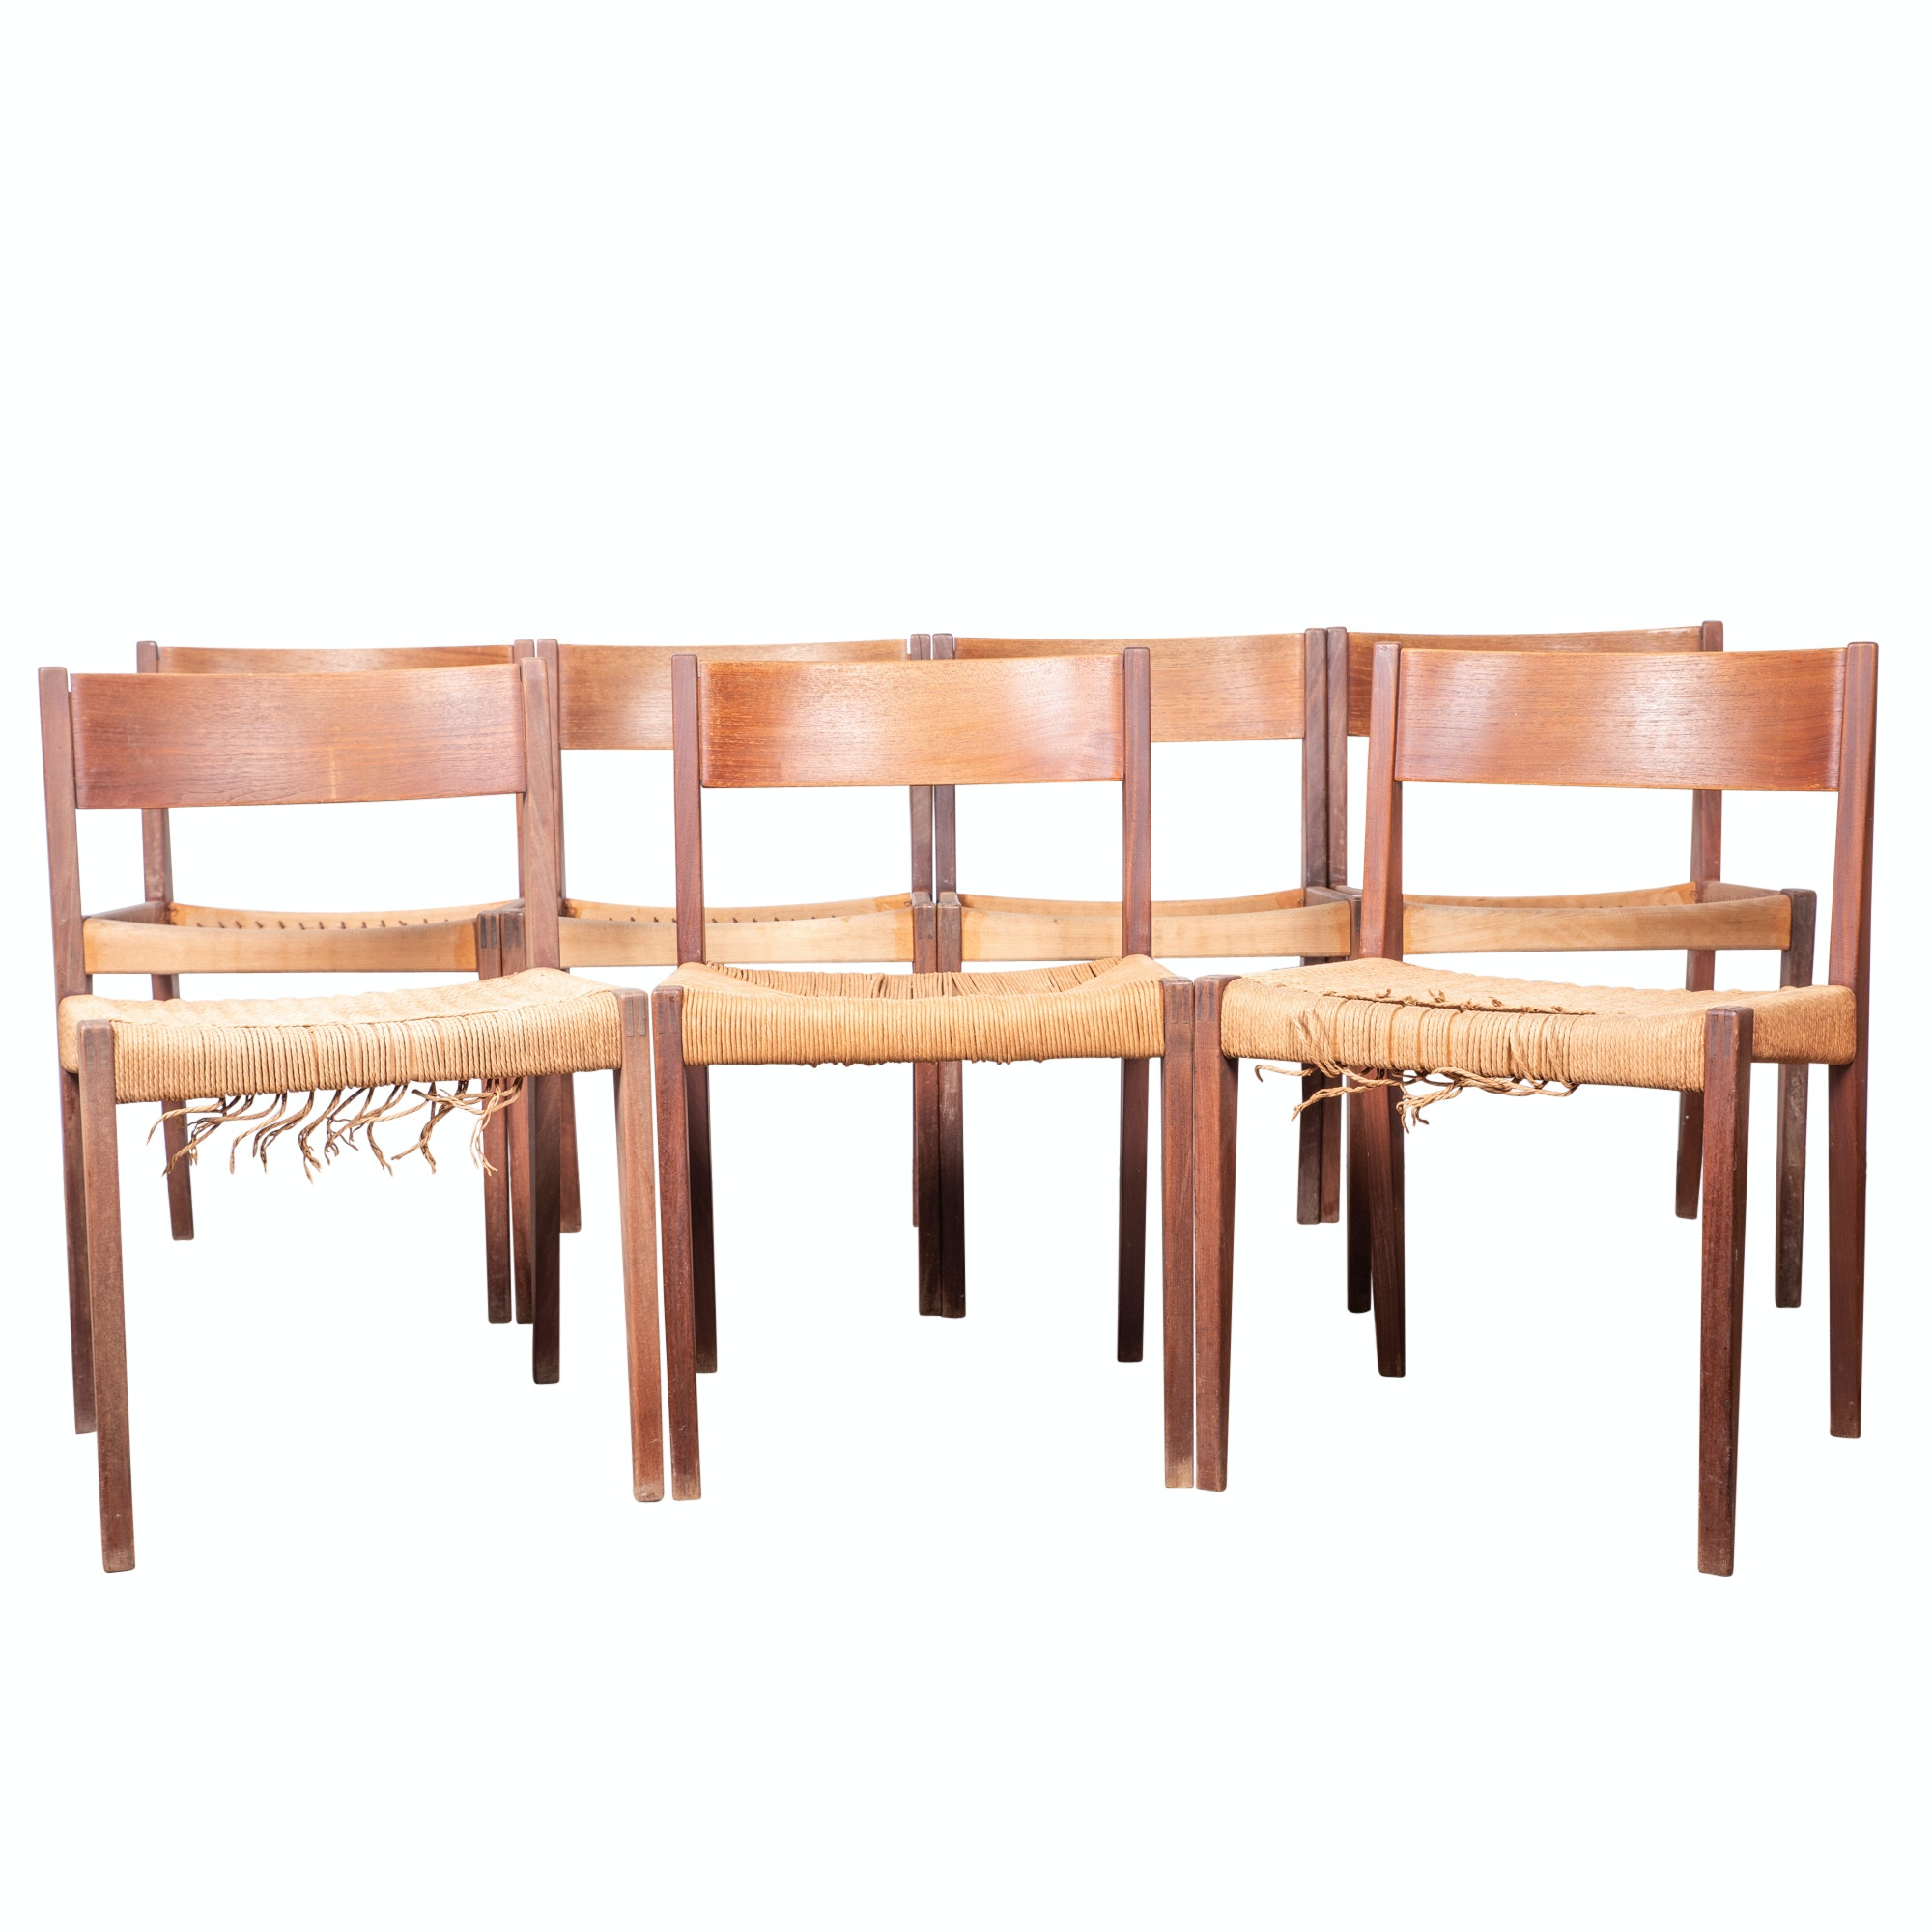 Danish Modern Teak Dining Chairs, Mid-20th Century